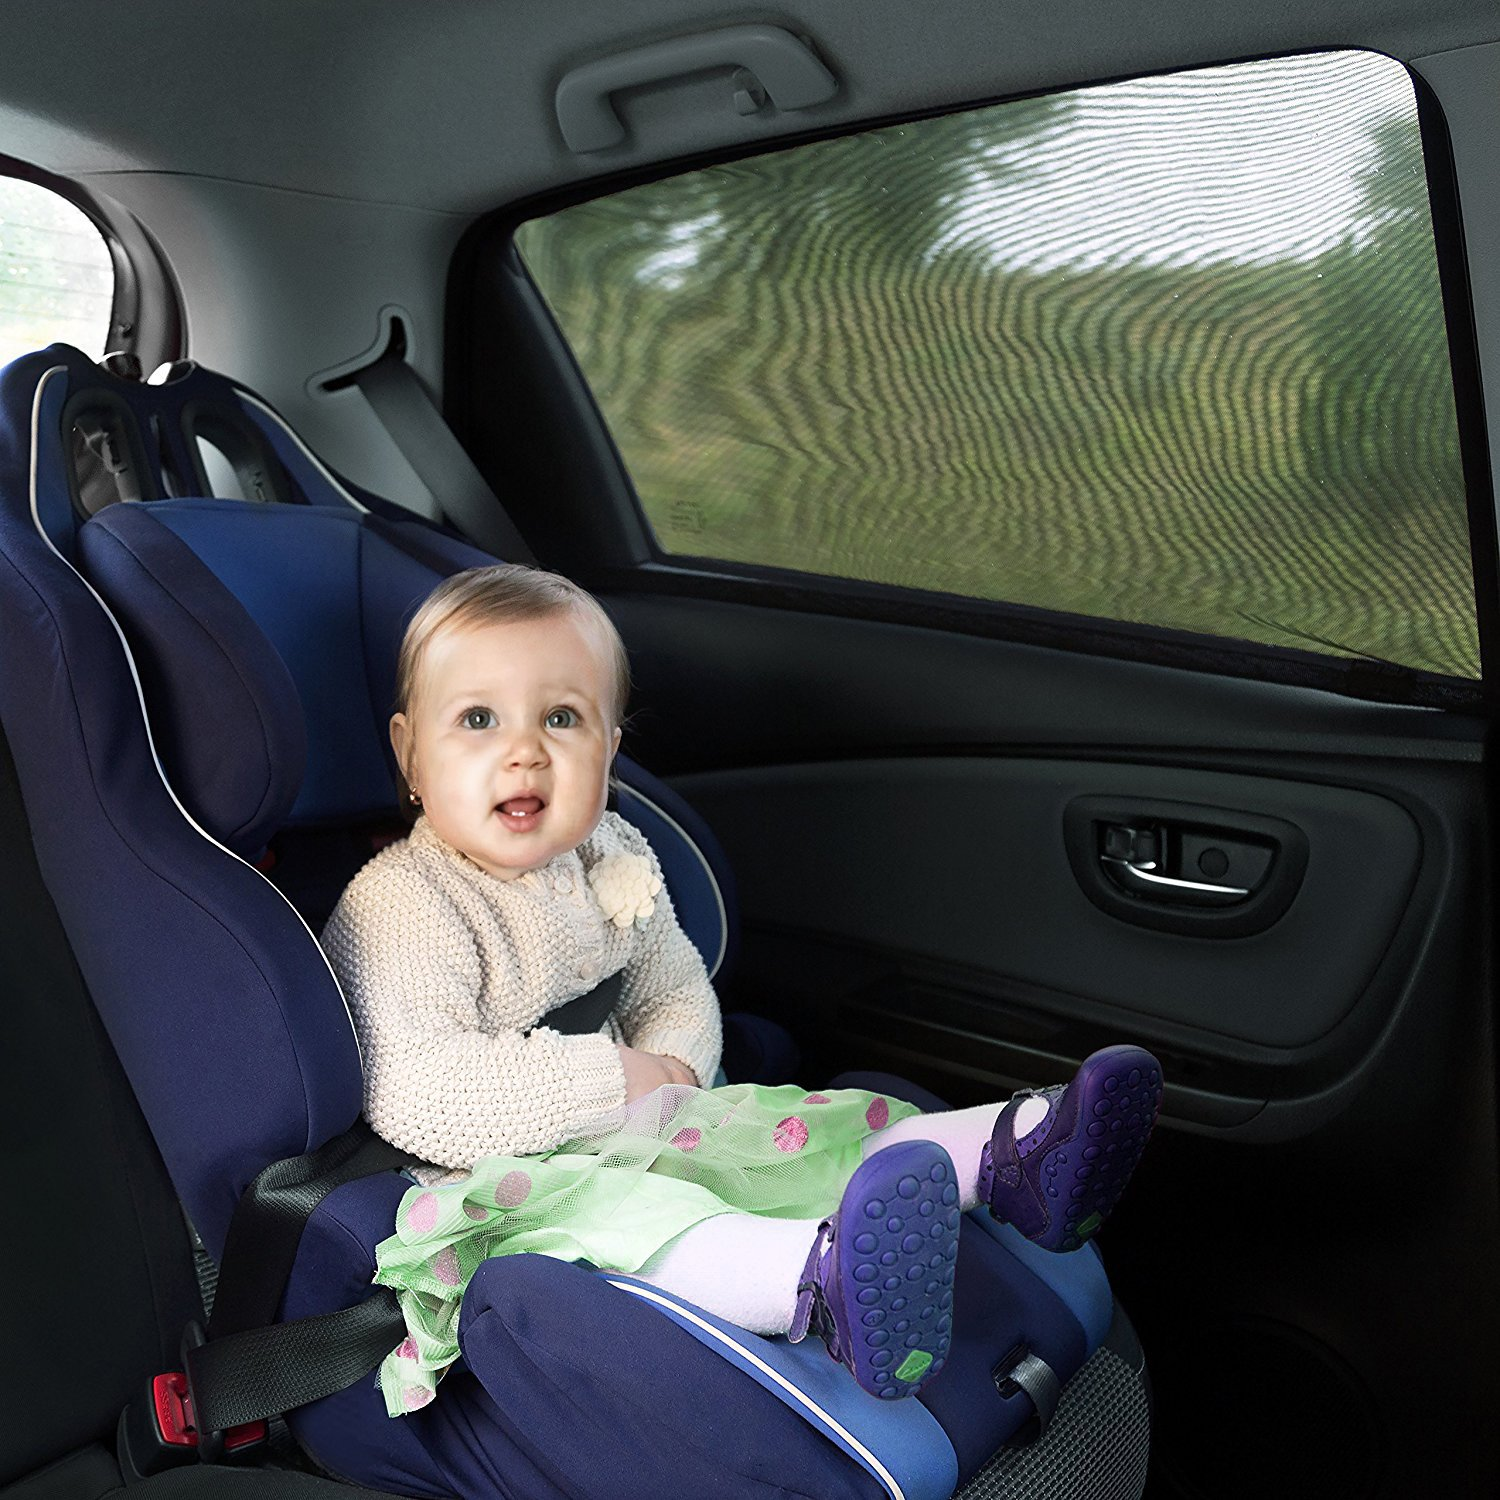 Pack of 2,Large Size Trucks and SUVs ZOTO Car Rear Window Sun Shade Universal Car Curtains Fit For Cars Premium Breathable Mesh Sun Shield protect Baby//Pet from Suns Glare /& Harmful UV Rays